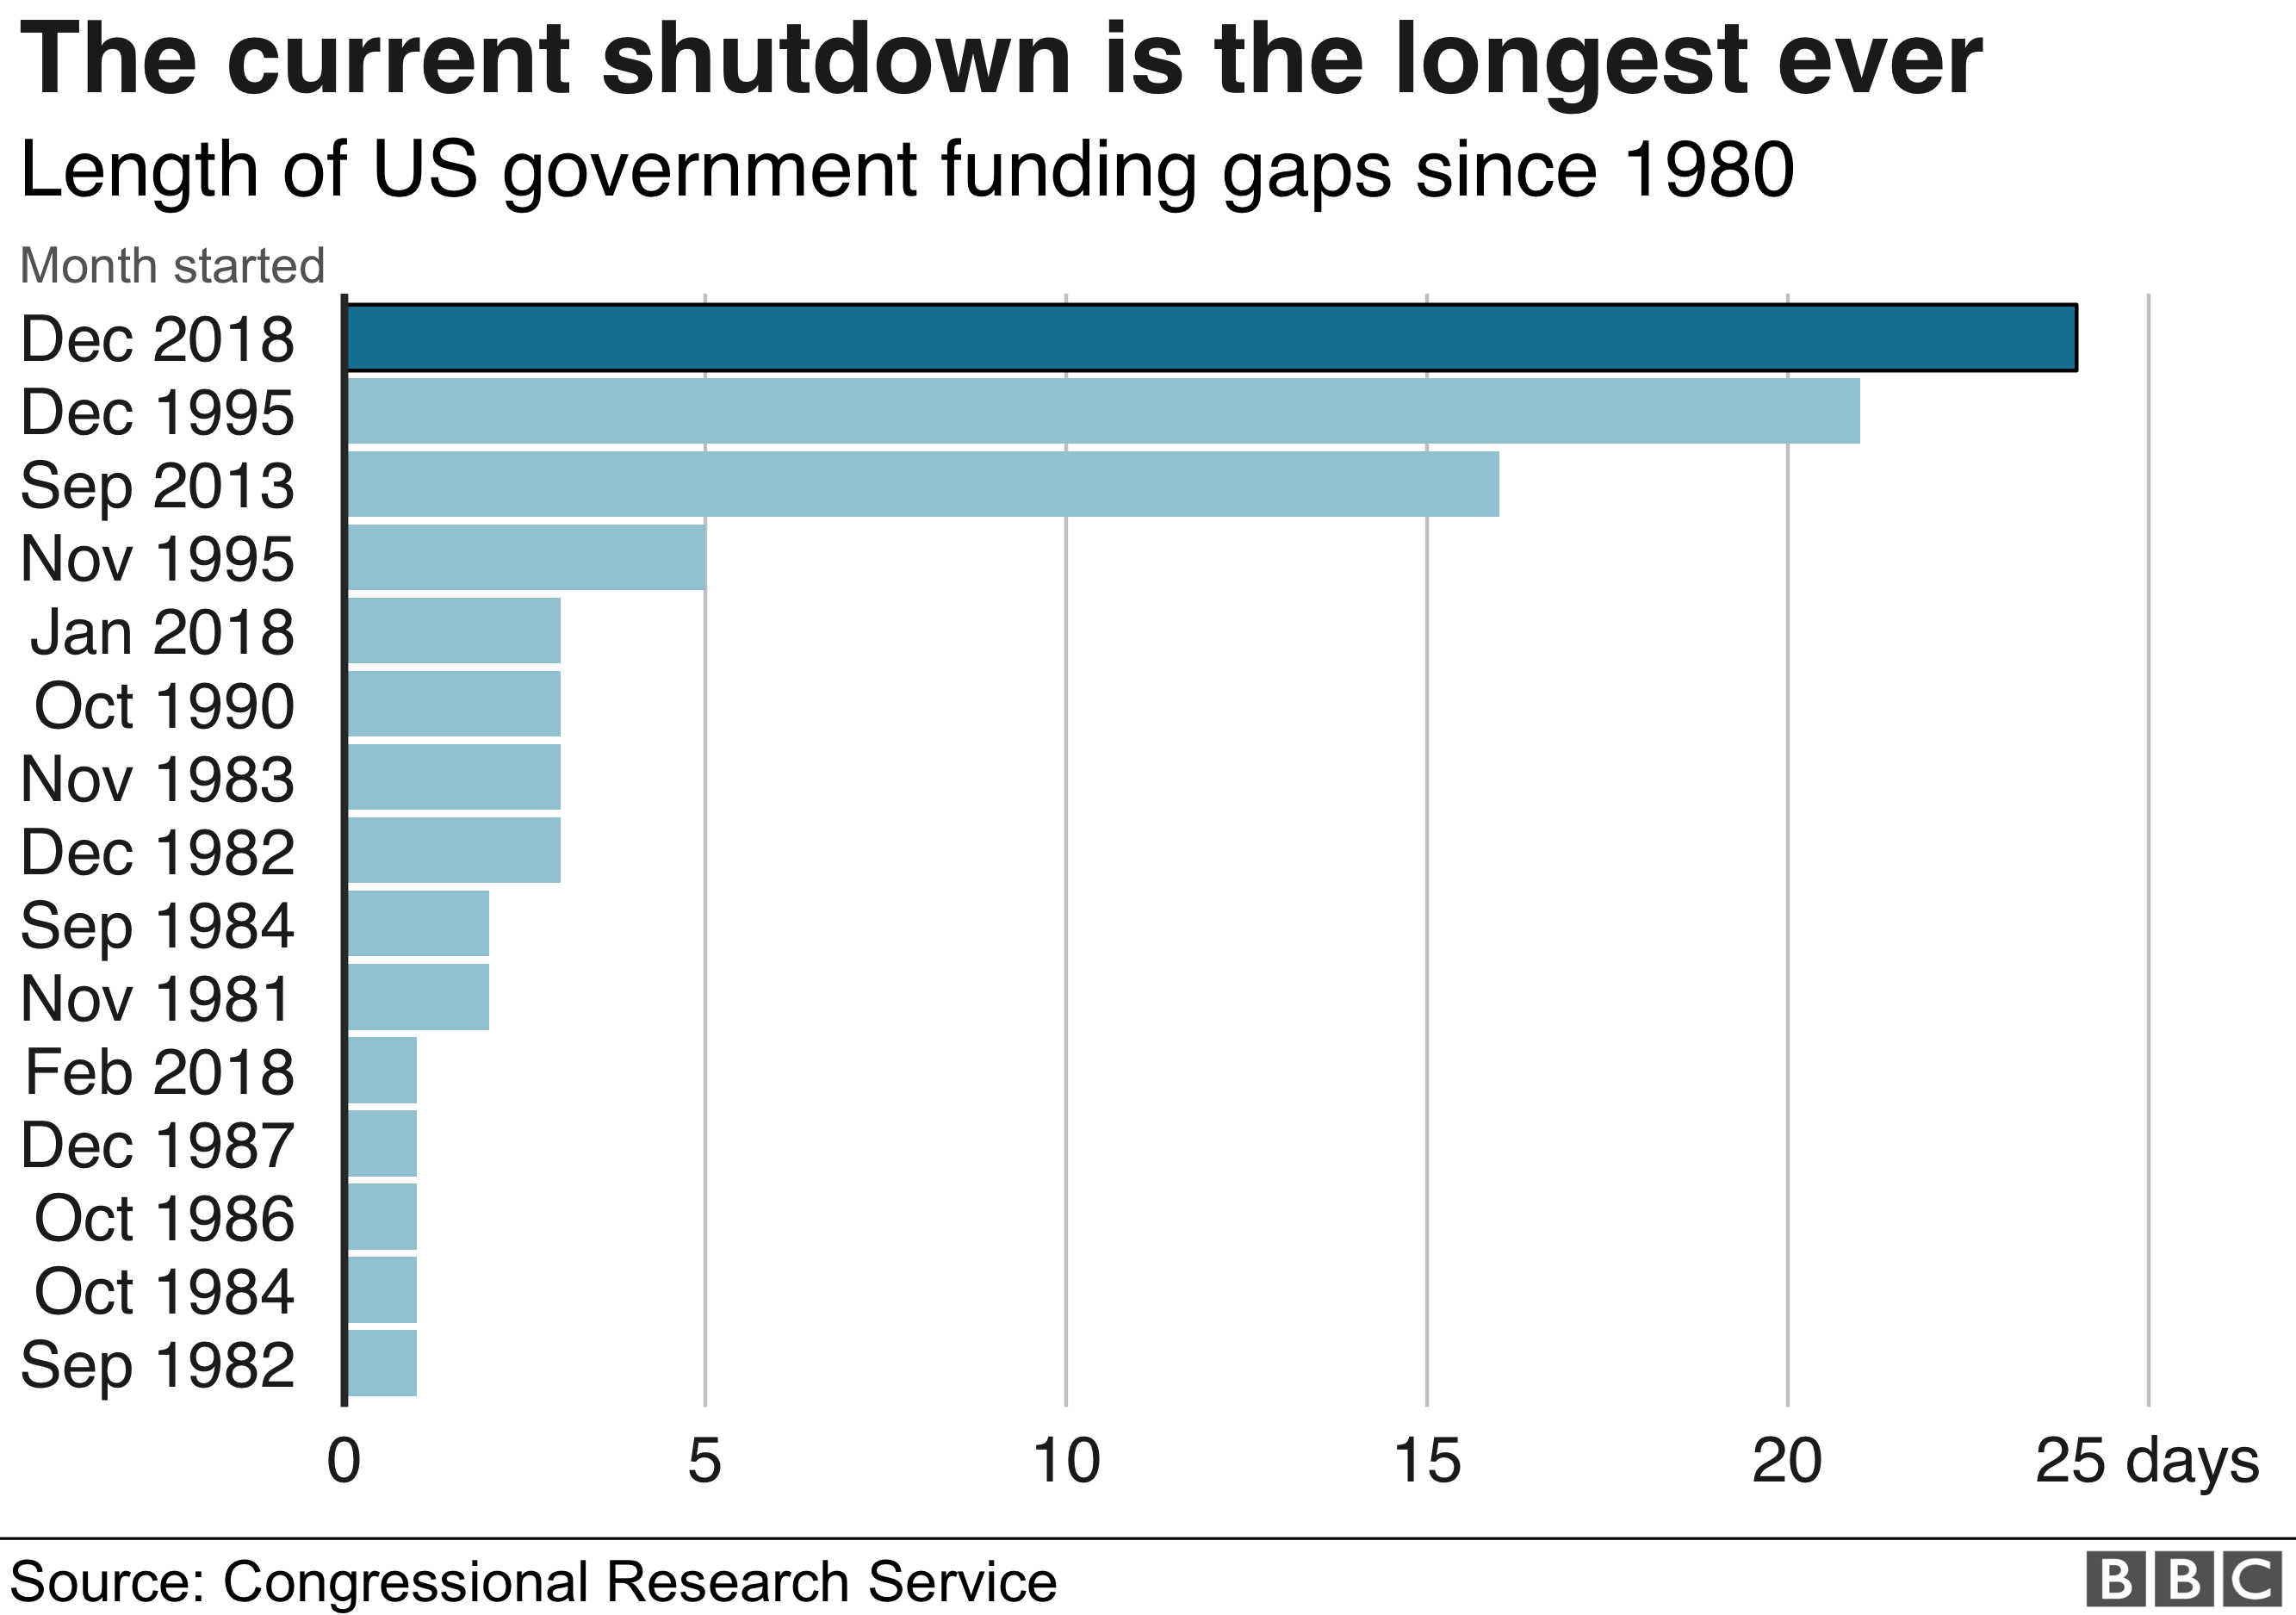 graphic showing lengths of shutdowns